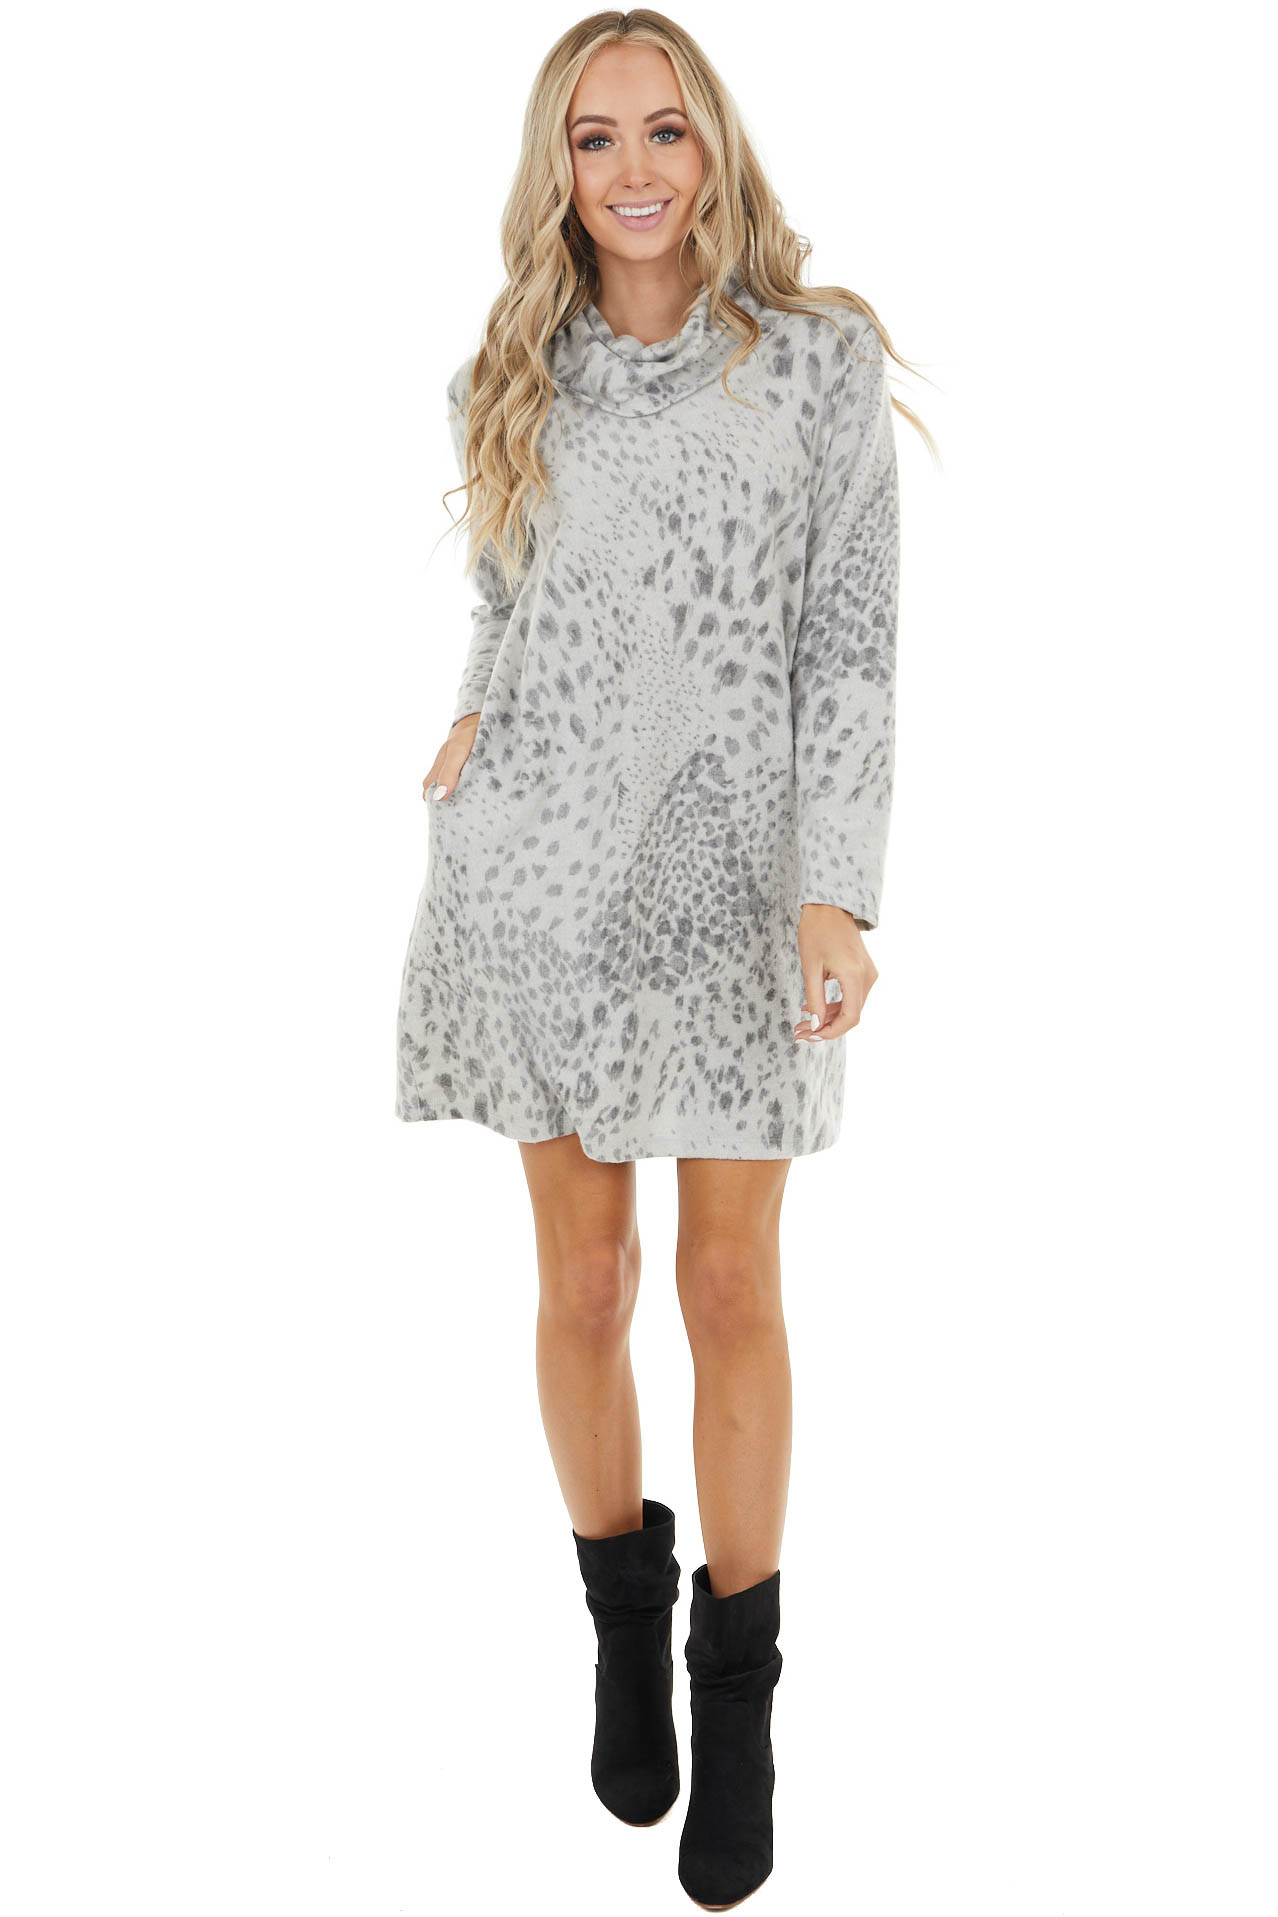 Heather Grey Leopard Print Cowl Neck Dress with Pockets